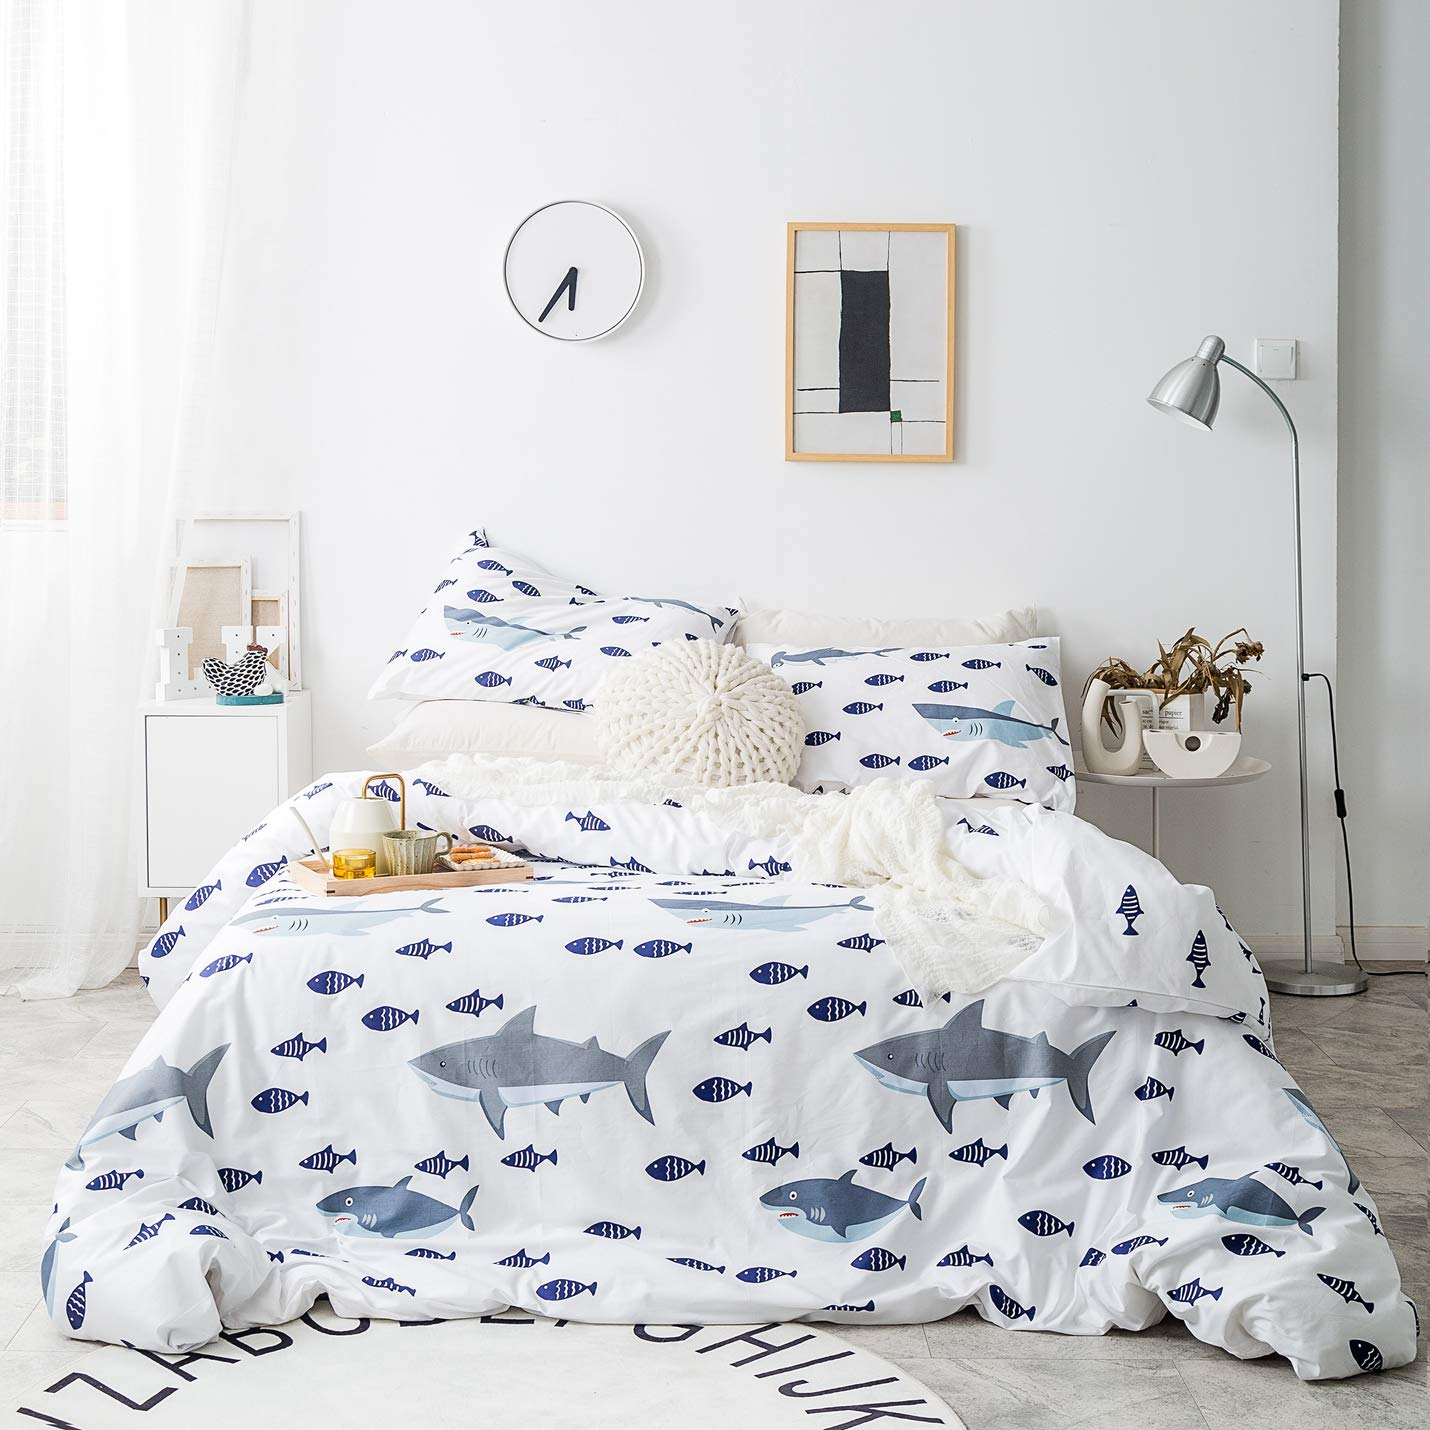 SUSYBAO 3 Pieces Duvet Cover Set 100% Natural Cotton White King Size Blue Gray Shark Bedding Set with Zipper Ties 1 Cartoon Fish Print Duvet Cover 2 Pillowcases Hotel Quality Soft Breathable Durable